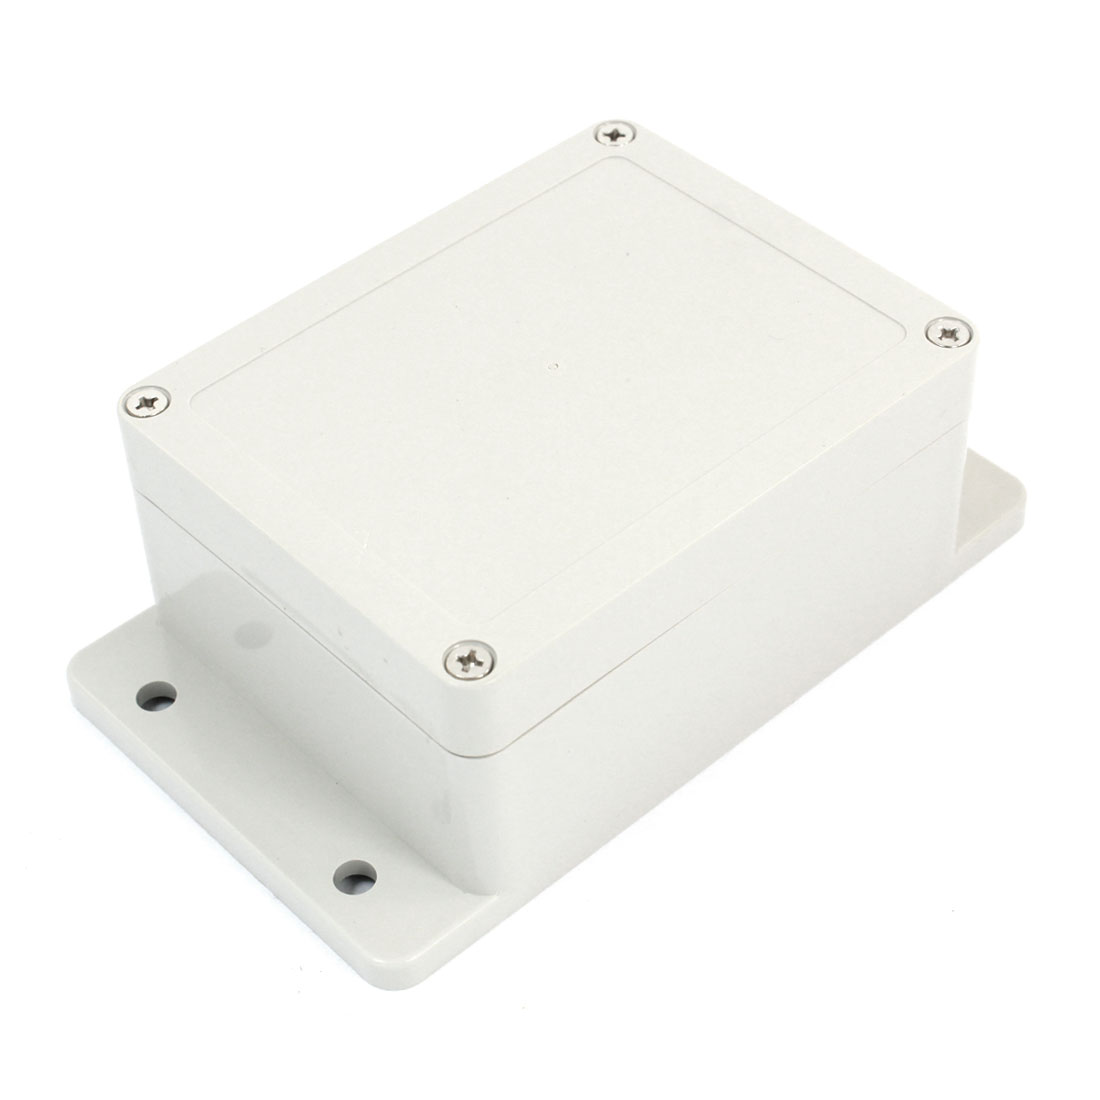 Rectangular Waterproof Plastic DIY Junction Box Case 112 x 87 x 54mm